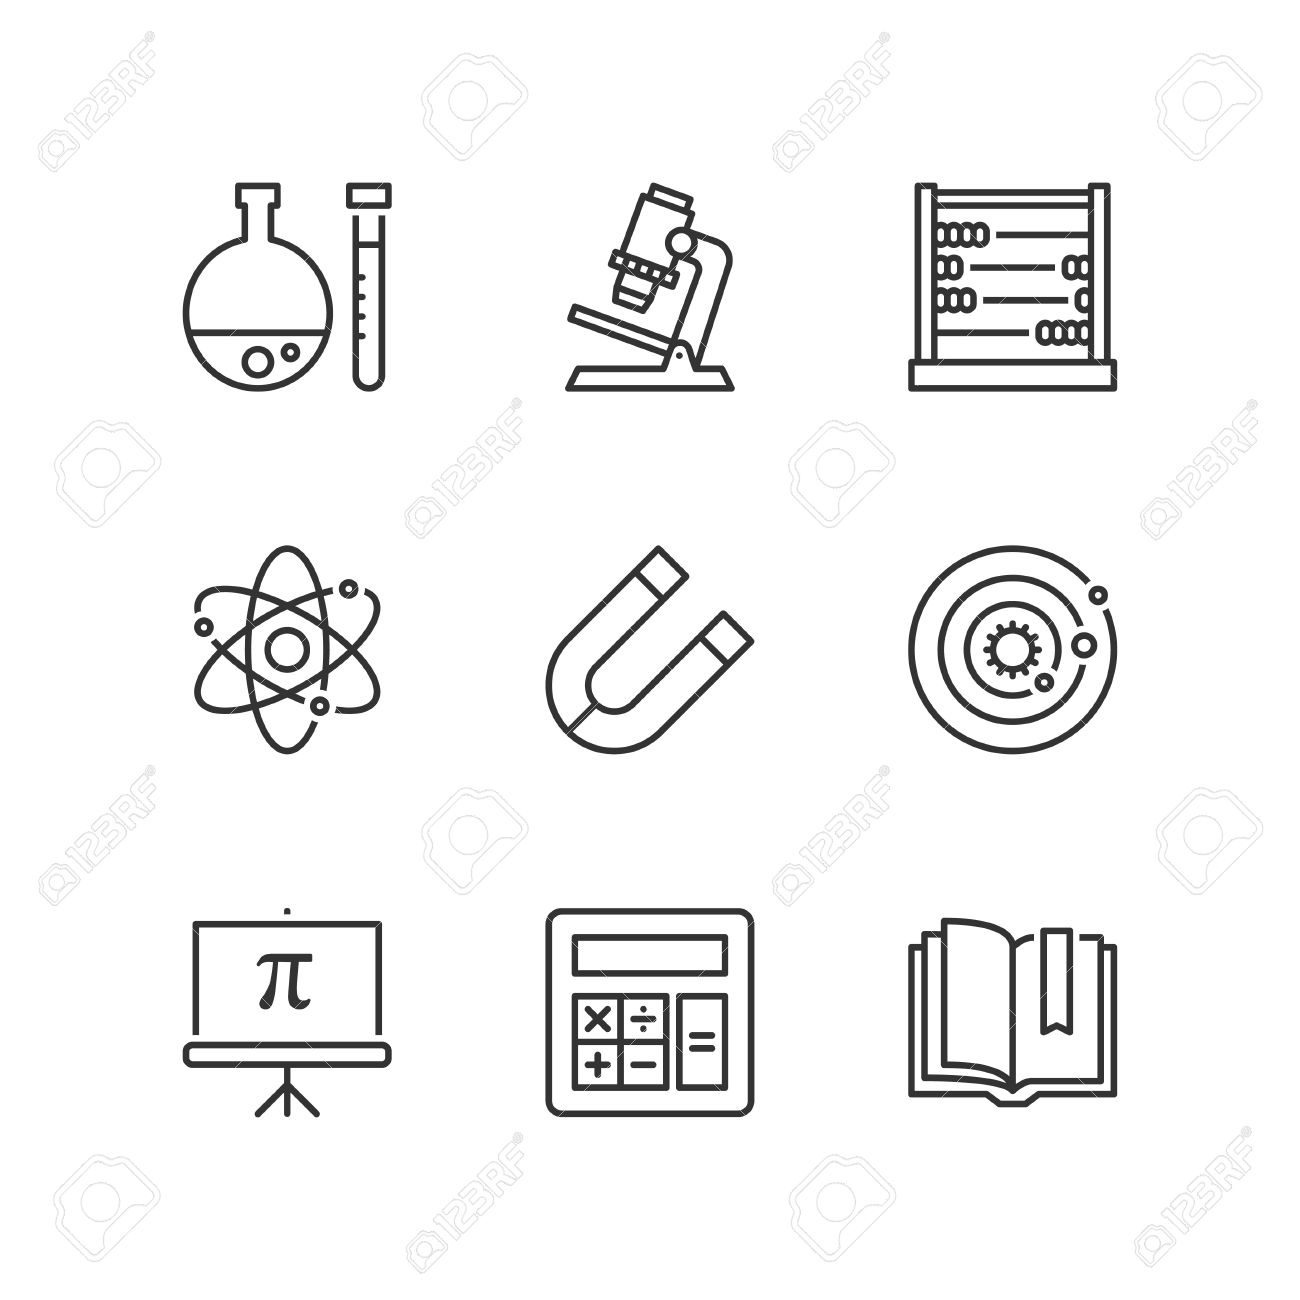 Thin line icons set about school science subjects flat symbols thin line icons set about school science subjects flat symbols stock vector 63054054 buycottarizona Image collections